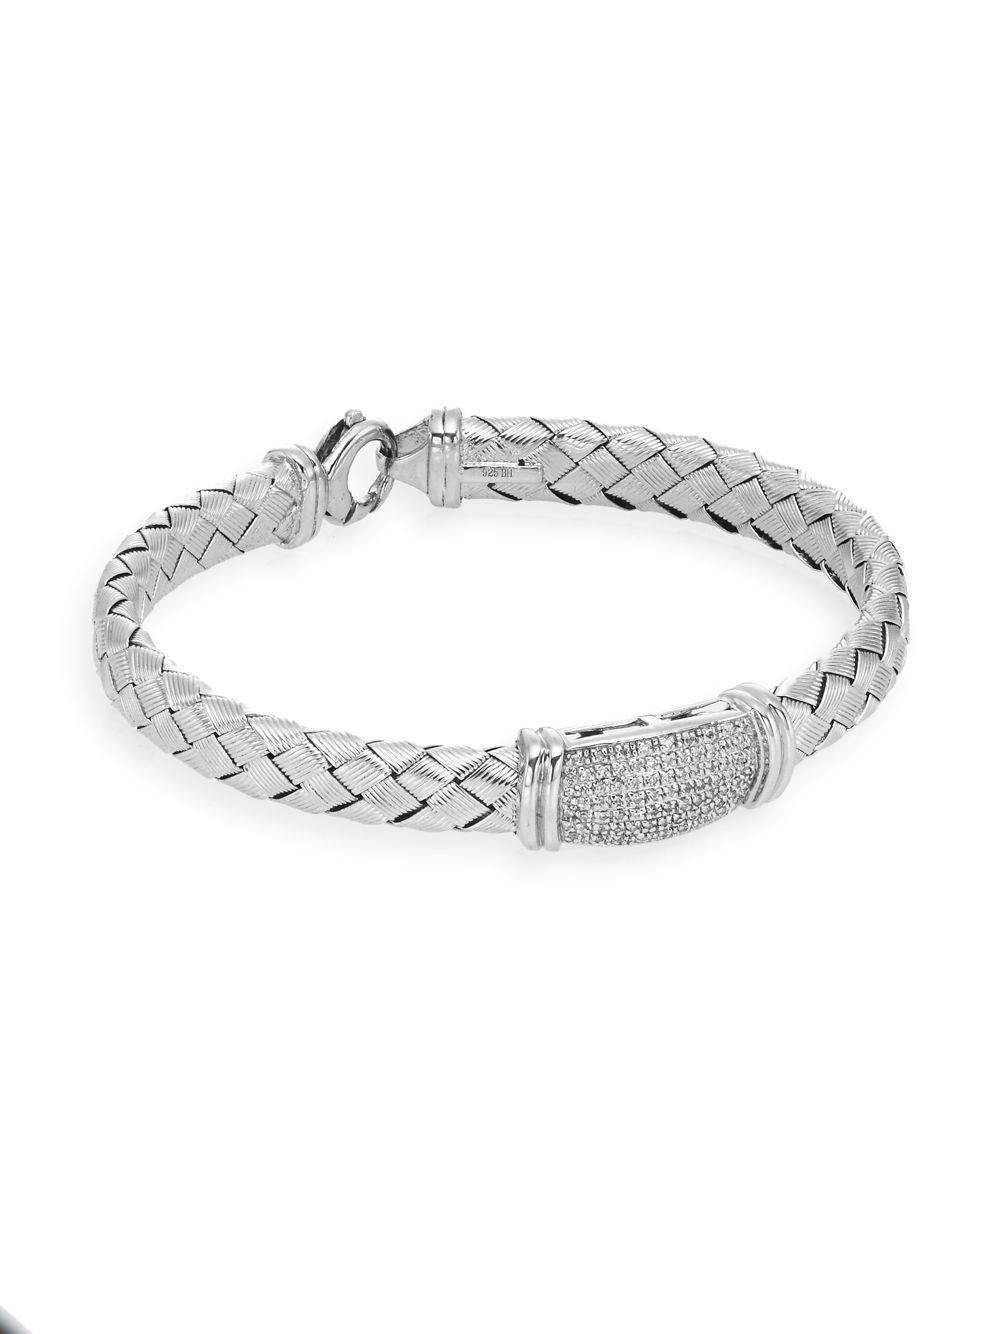 silver candela collection rioja roja bangle bangles collections candella diamond andrea and sterling products bracelets